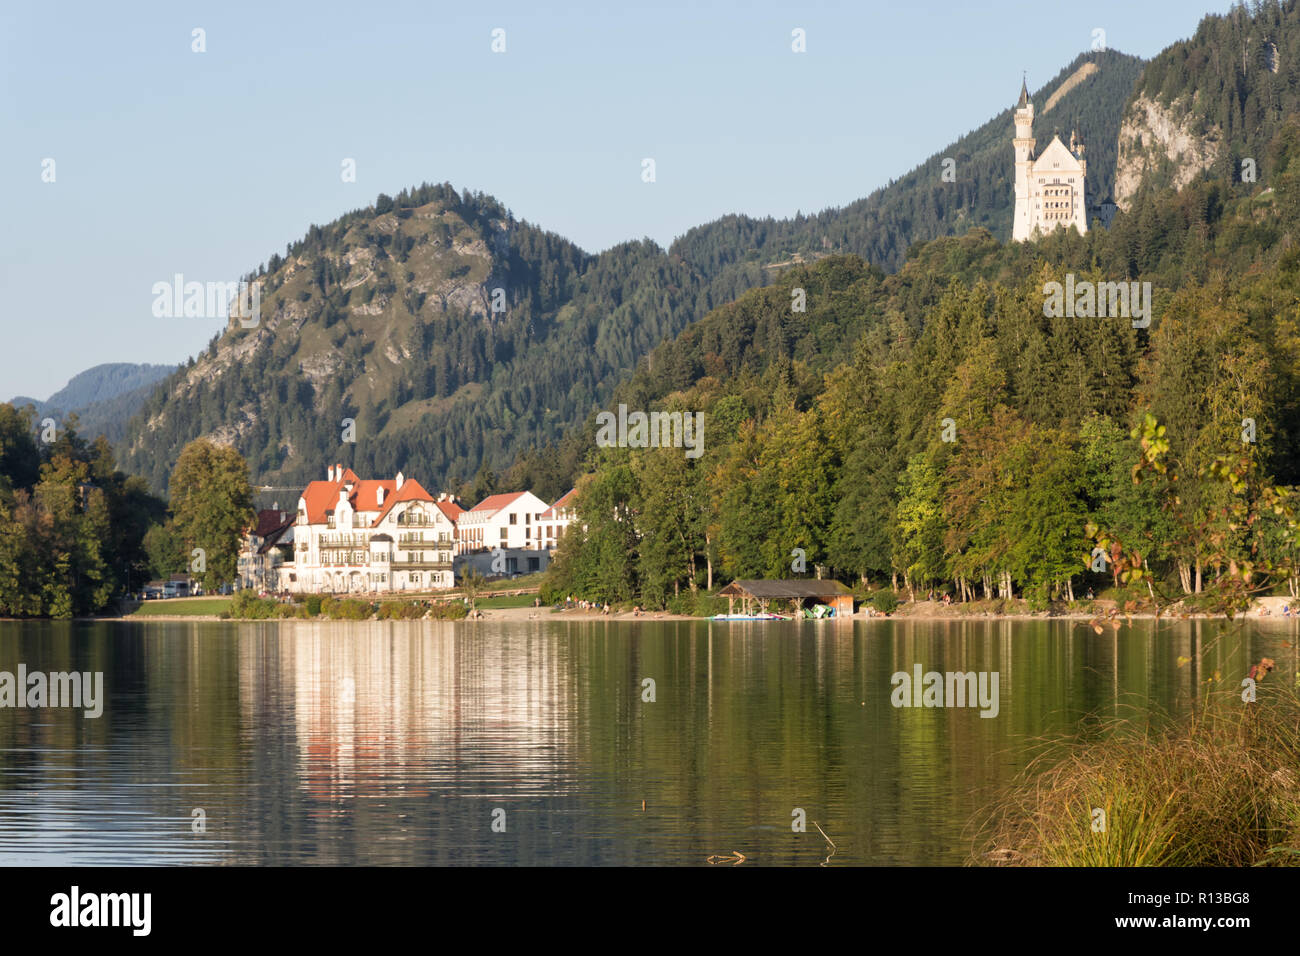 Lake Alpsee, Füssen, with Neuschwanstein, Restaurant Alpenrose am See and next to the Restaurant the newly built hotel on a warm sunny evening - Stock Image